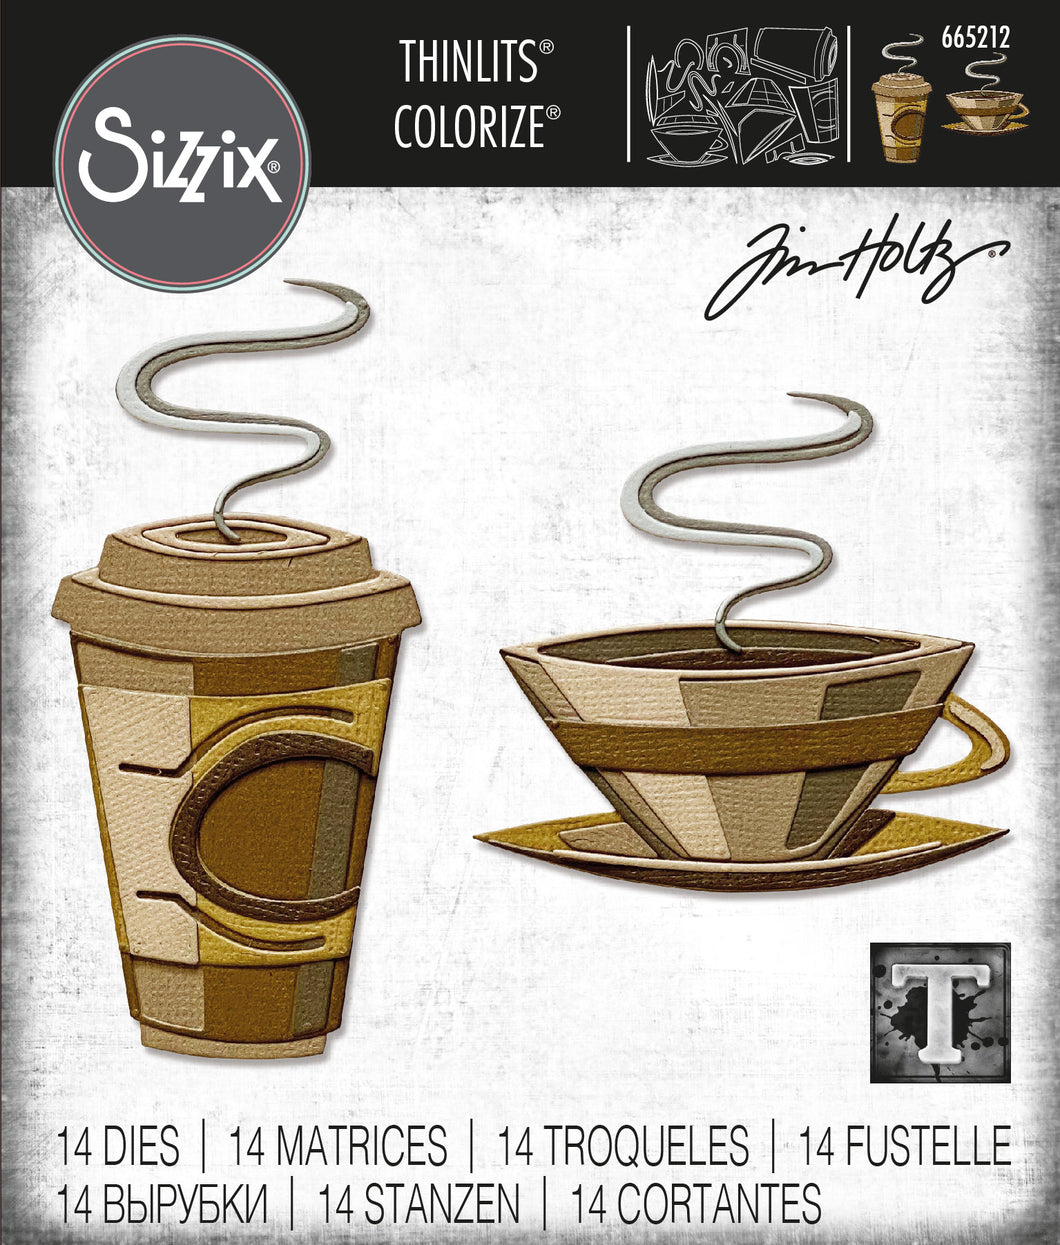 Sizzix Thinlits Die Set 14PK - Cafe, Colorize by Tim Holtz (665212)